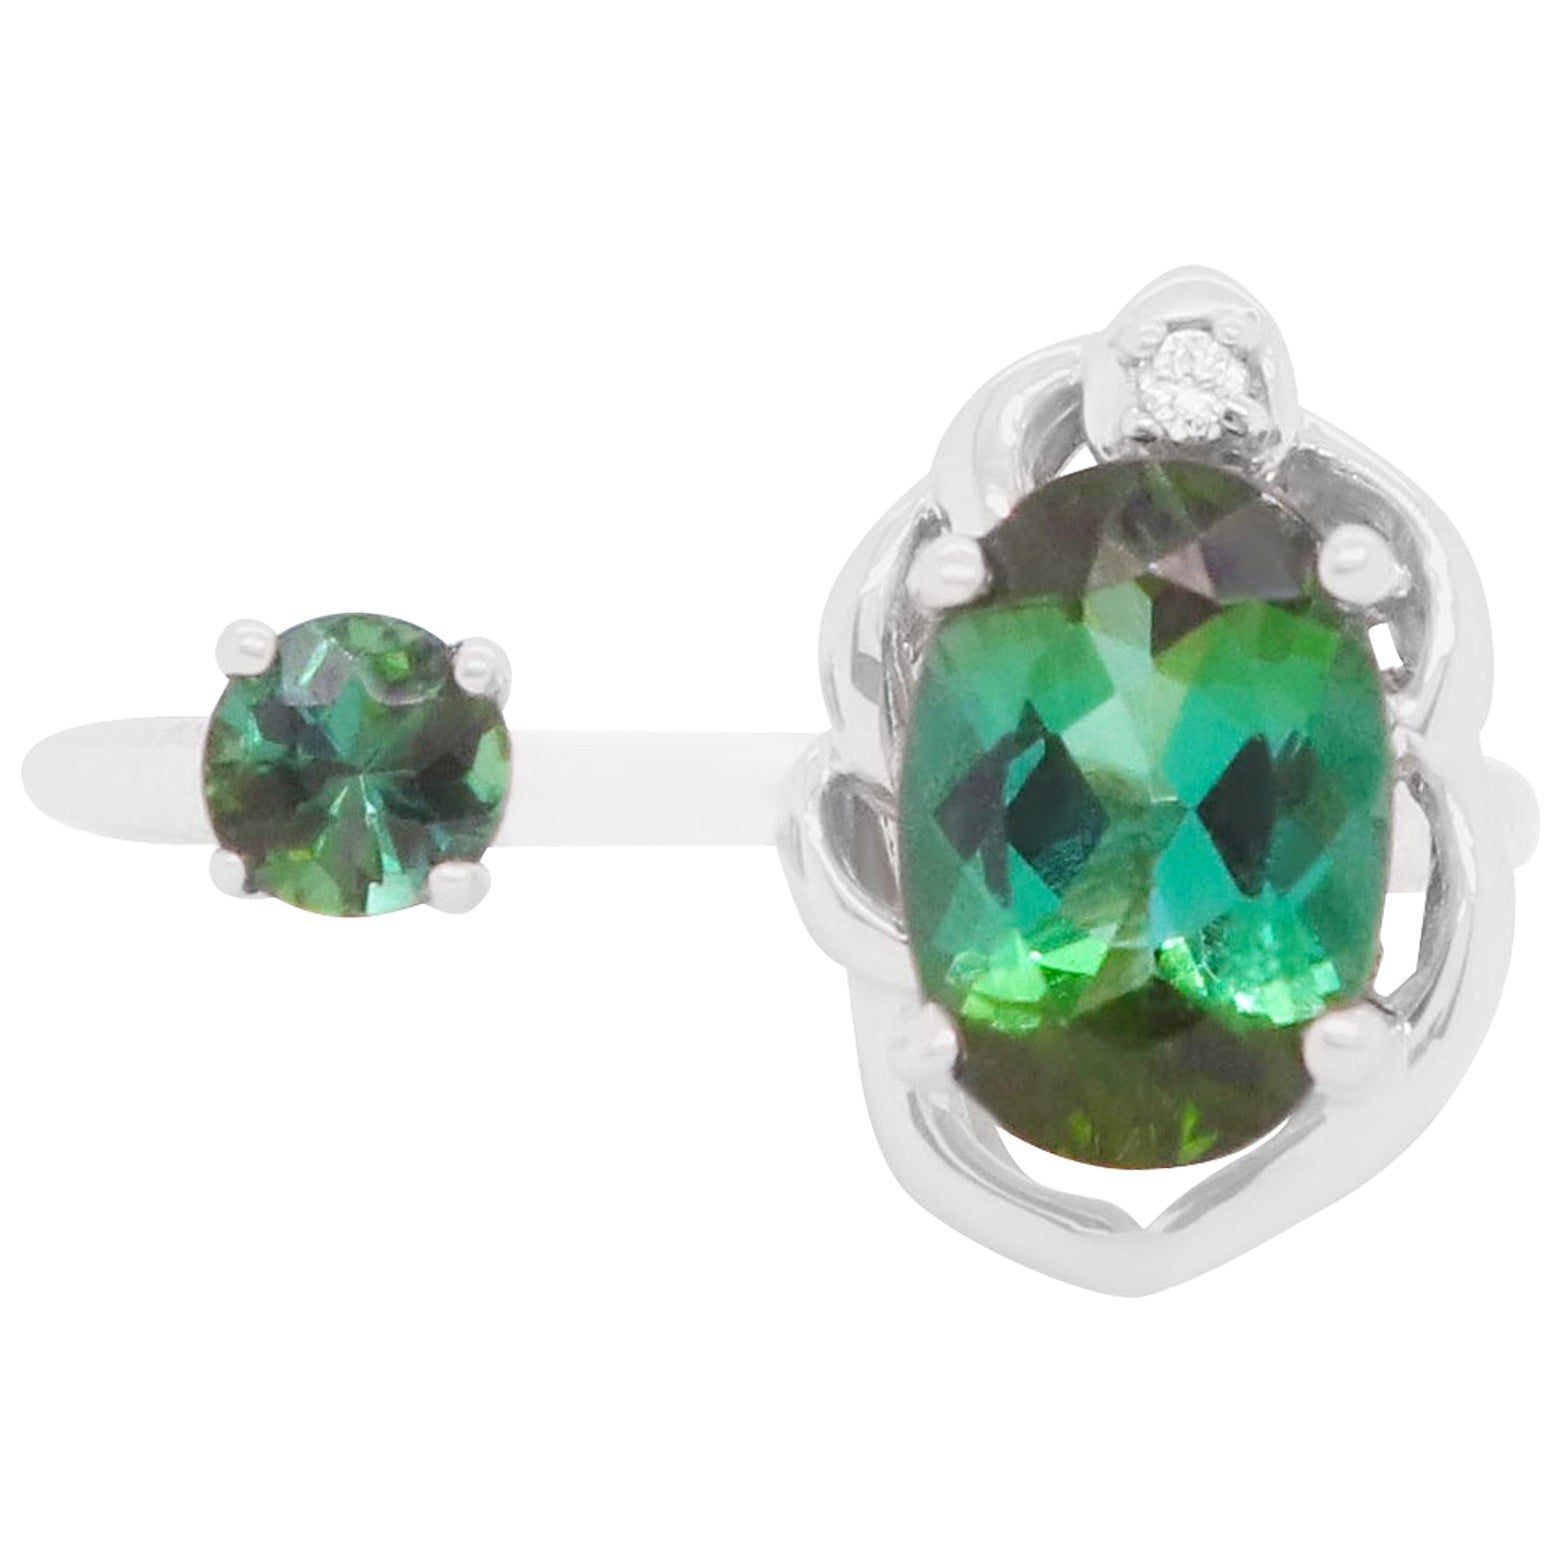 1.16 Ct Oval and Round Green Tourmaline  Diamond Toi-et-Moi Ring 14K White Gold